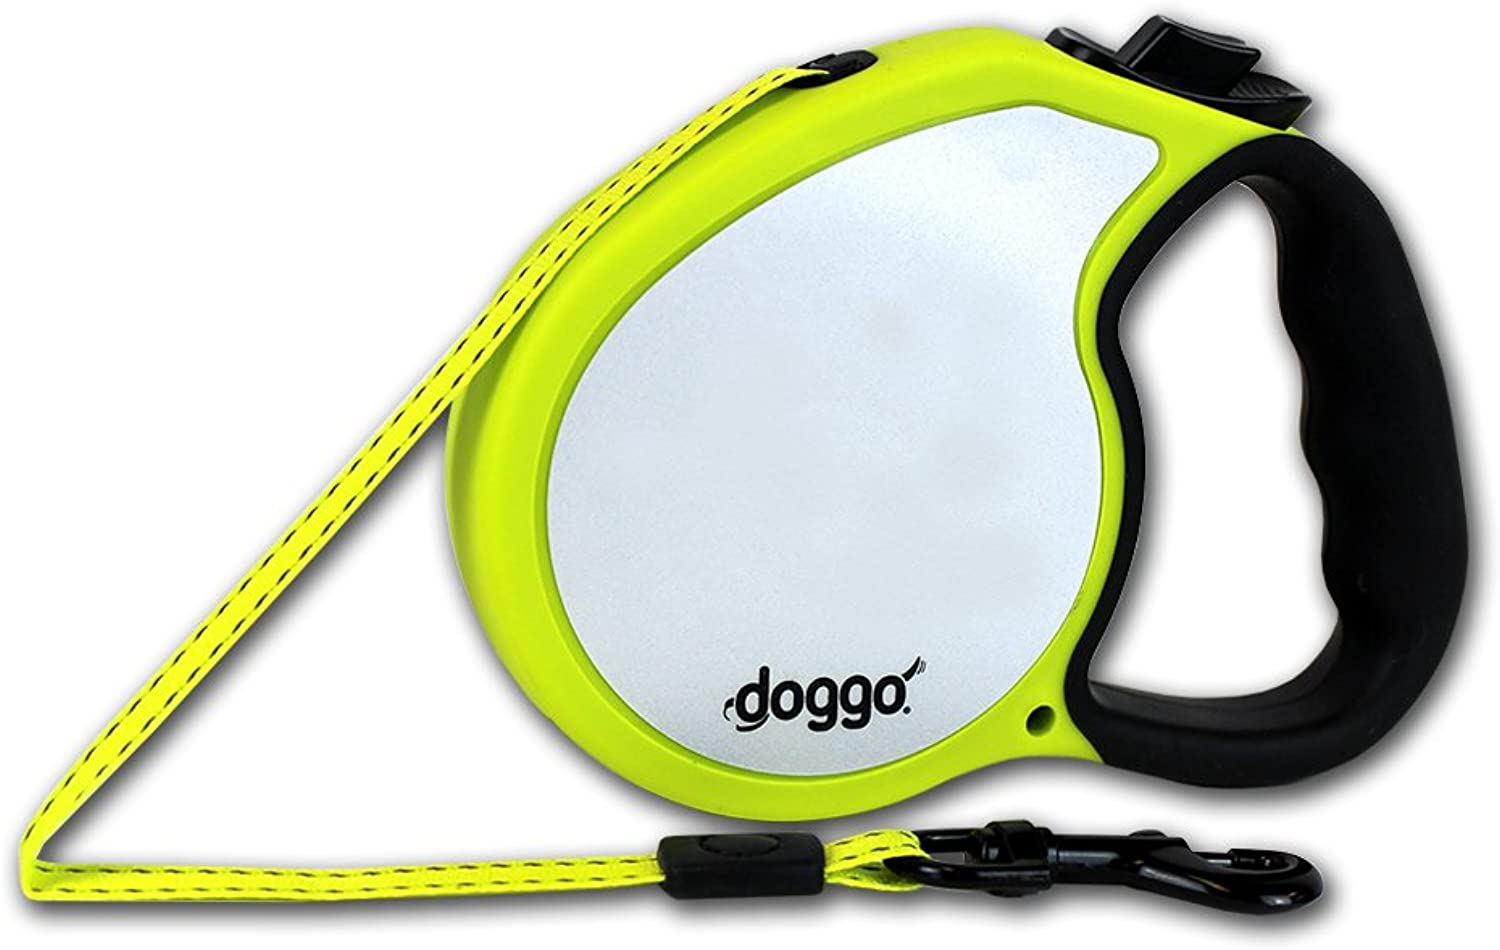 Doggo Reflective Retractable Dog Leash, 16' Long Reflective Belt, Small for Dogs Up to 45 lbs, Neon Yellow with Reflective Accents